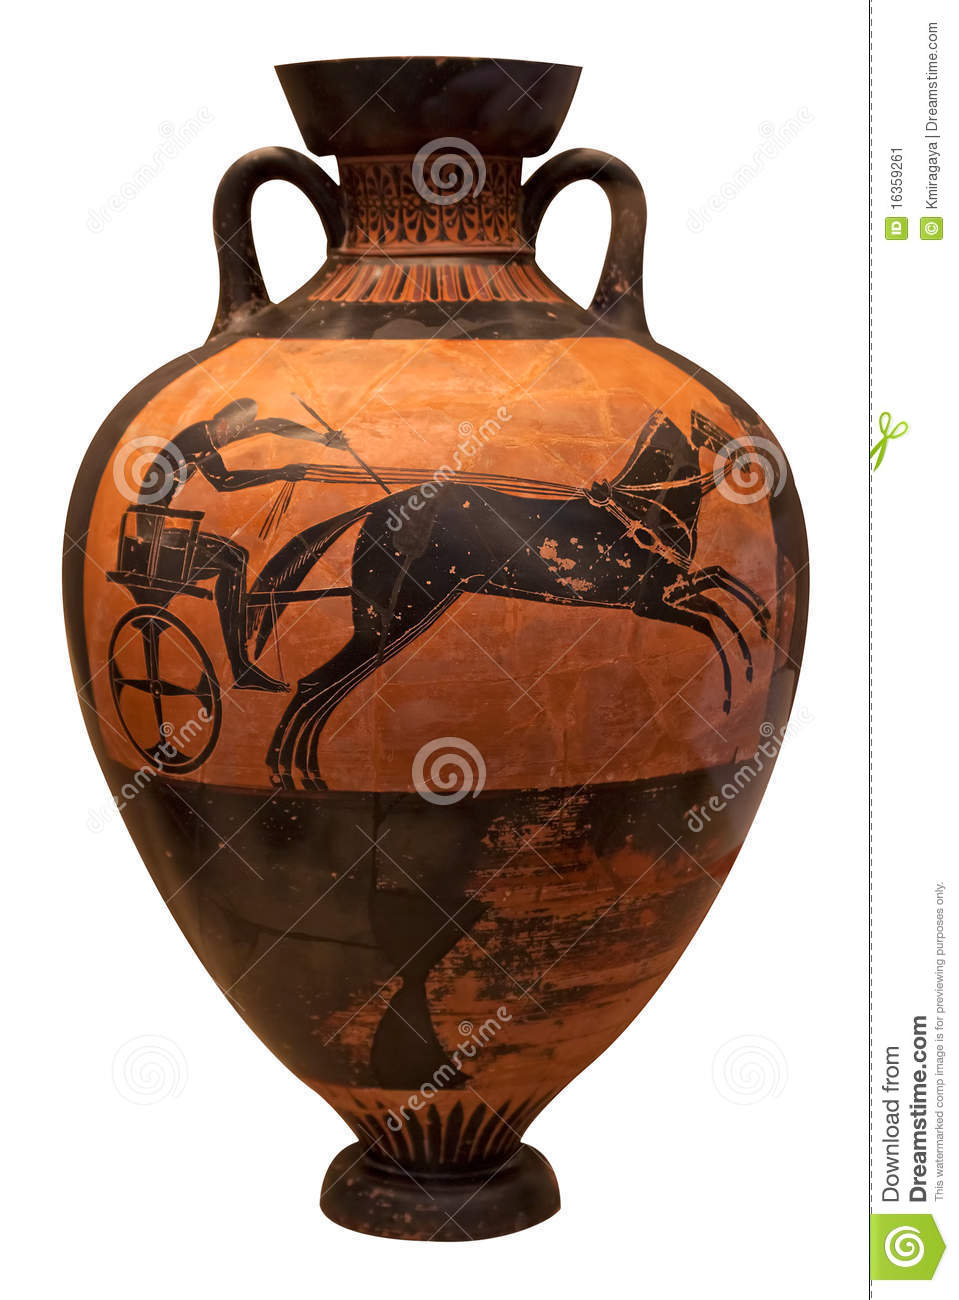 Ancient greek vase depicting a chariot